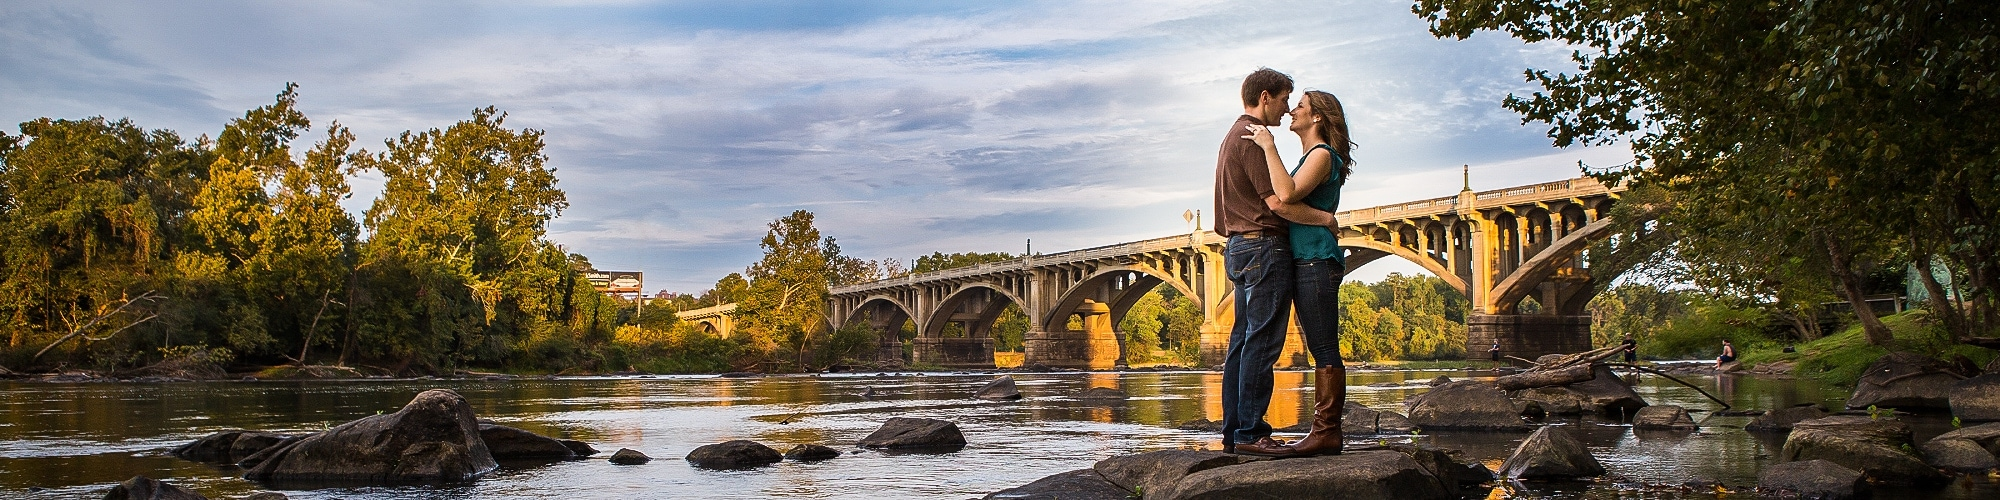 Engagement session at the Congaree River in front of the Gervais Street Bridge